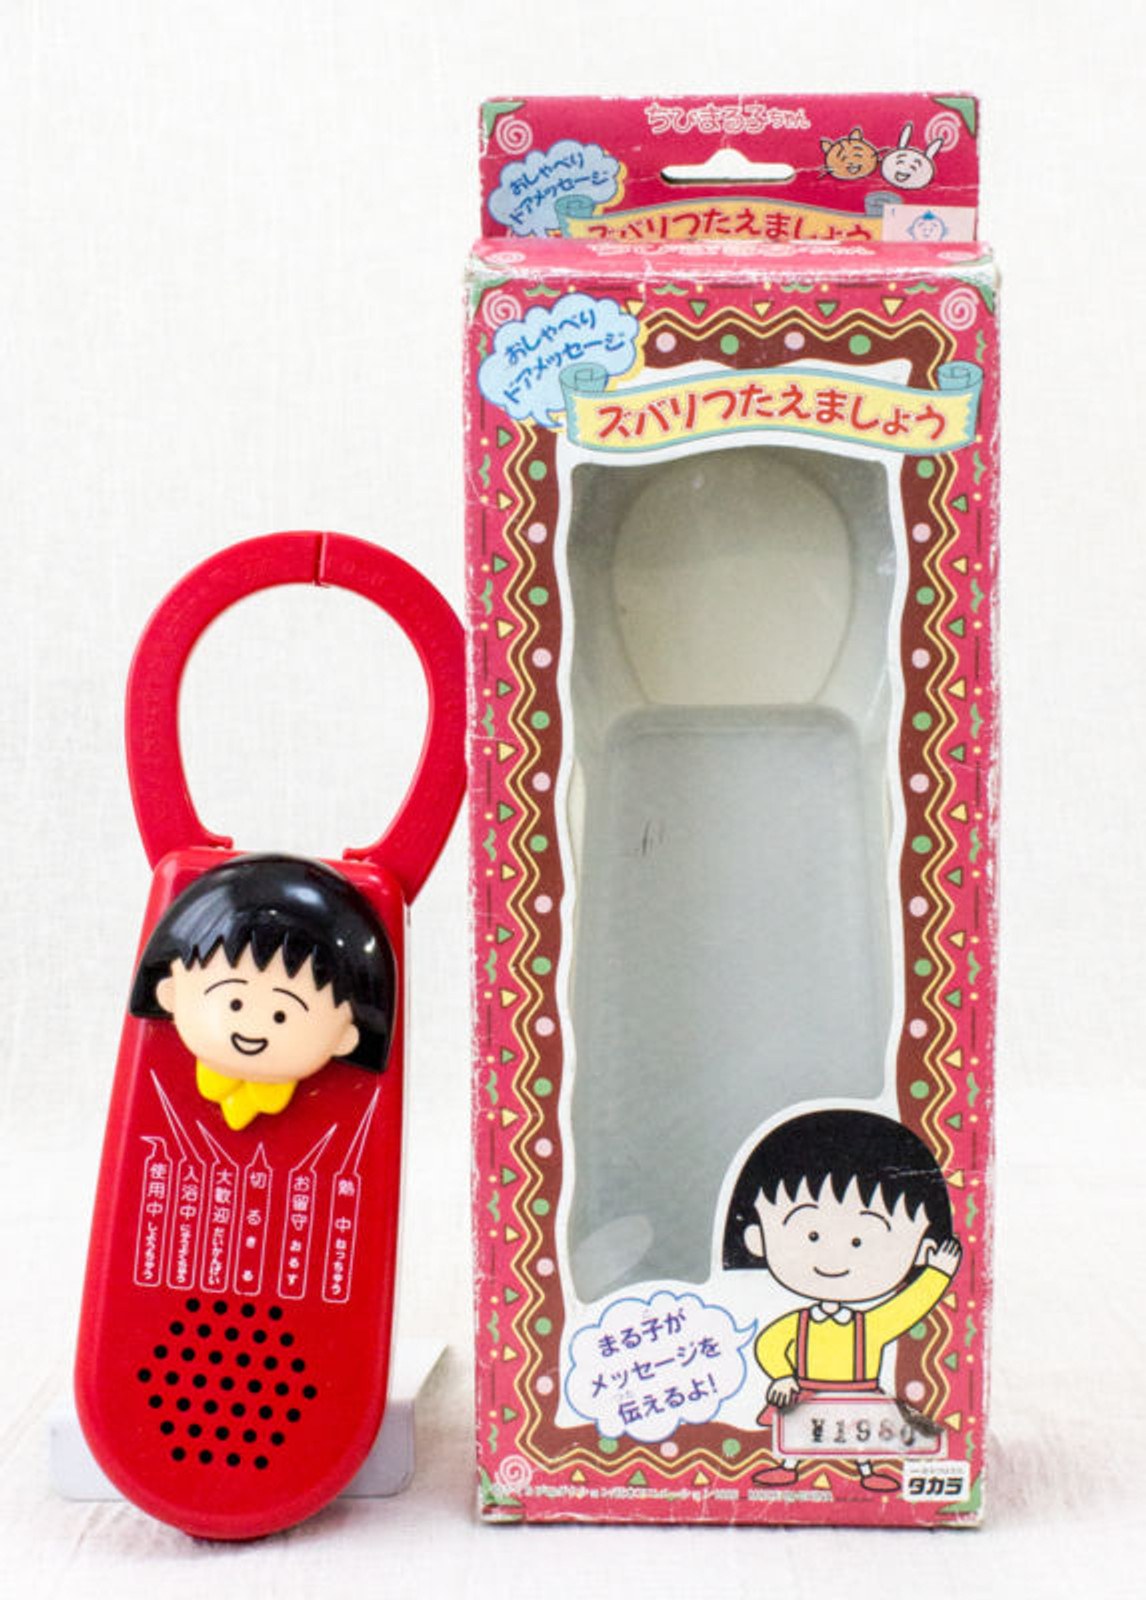 RARE! Chibi Maruko Chan Voice Sound Door Messenger Toy JAPAN ANIME MANGA